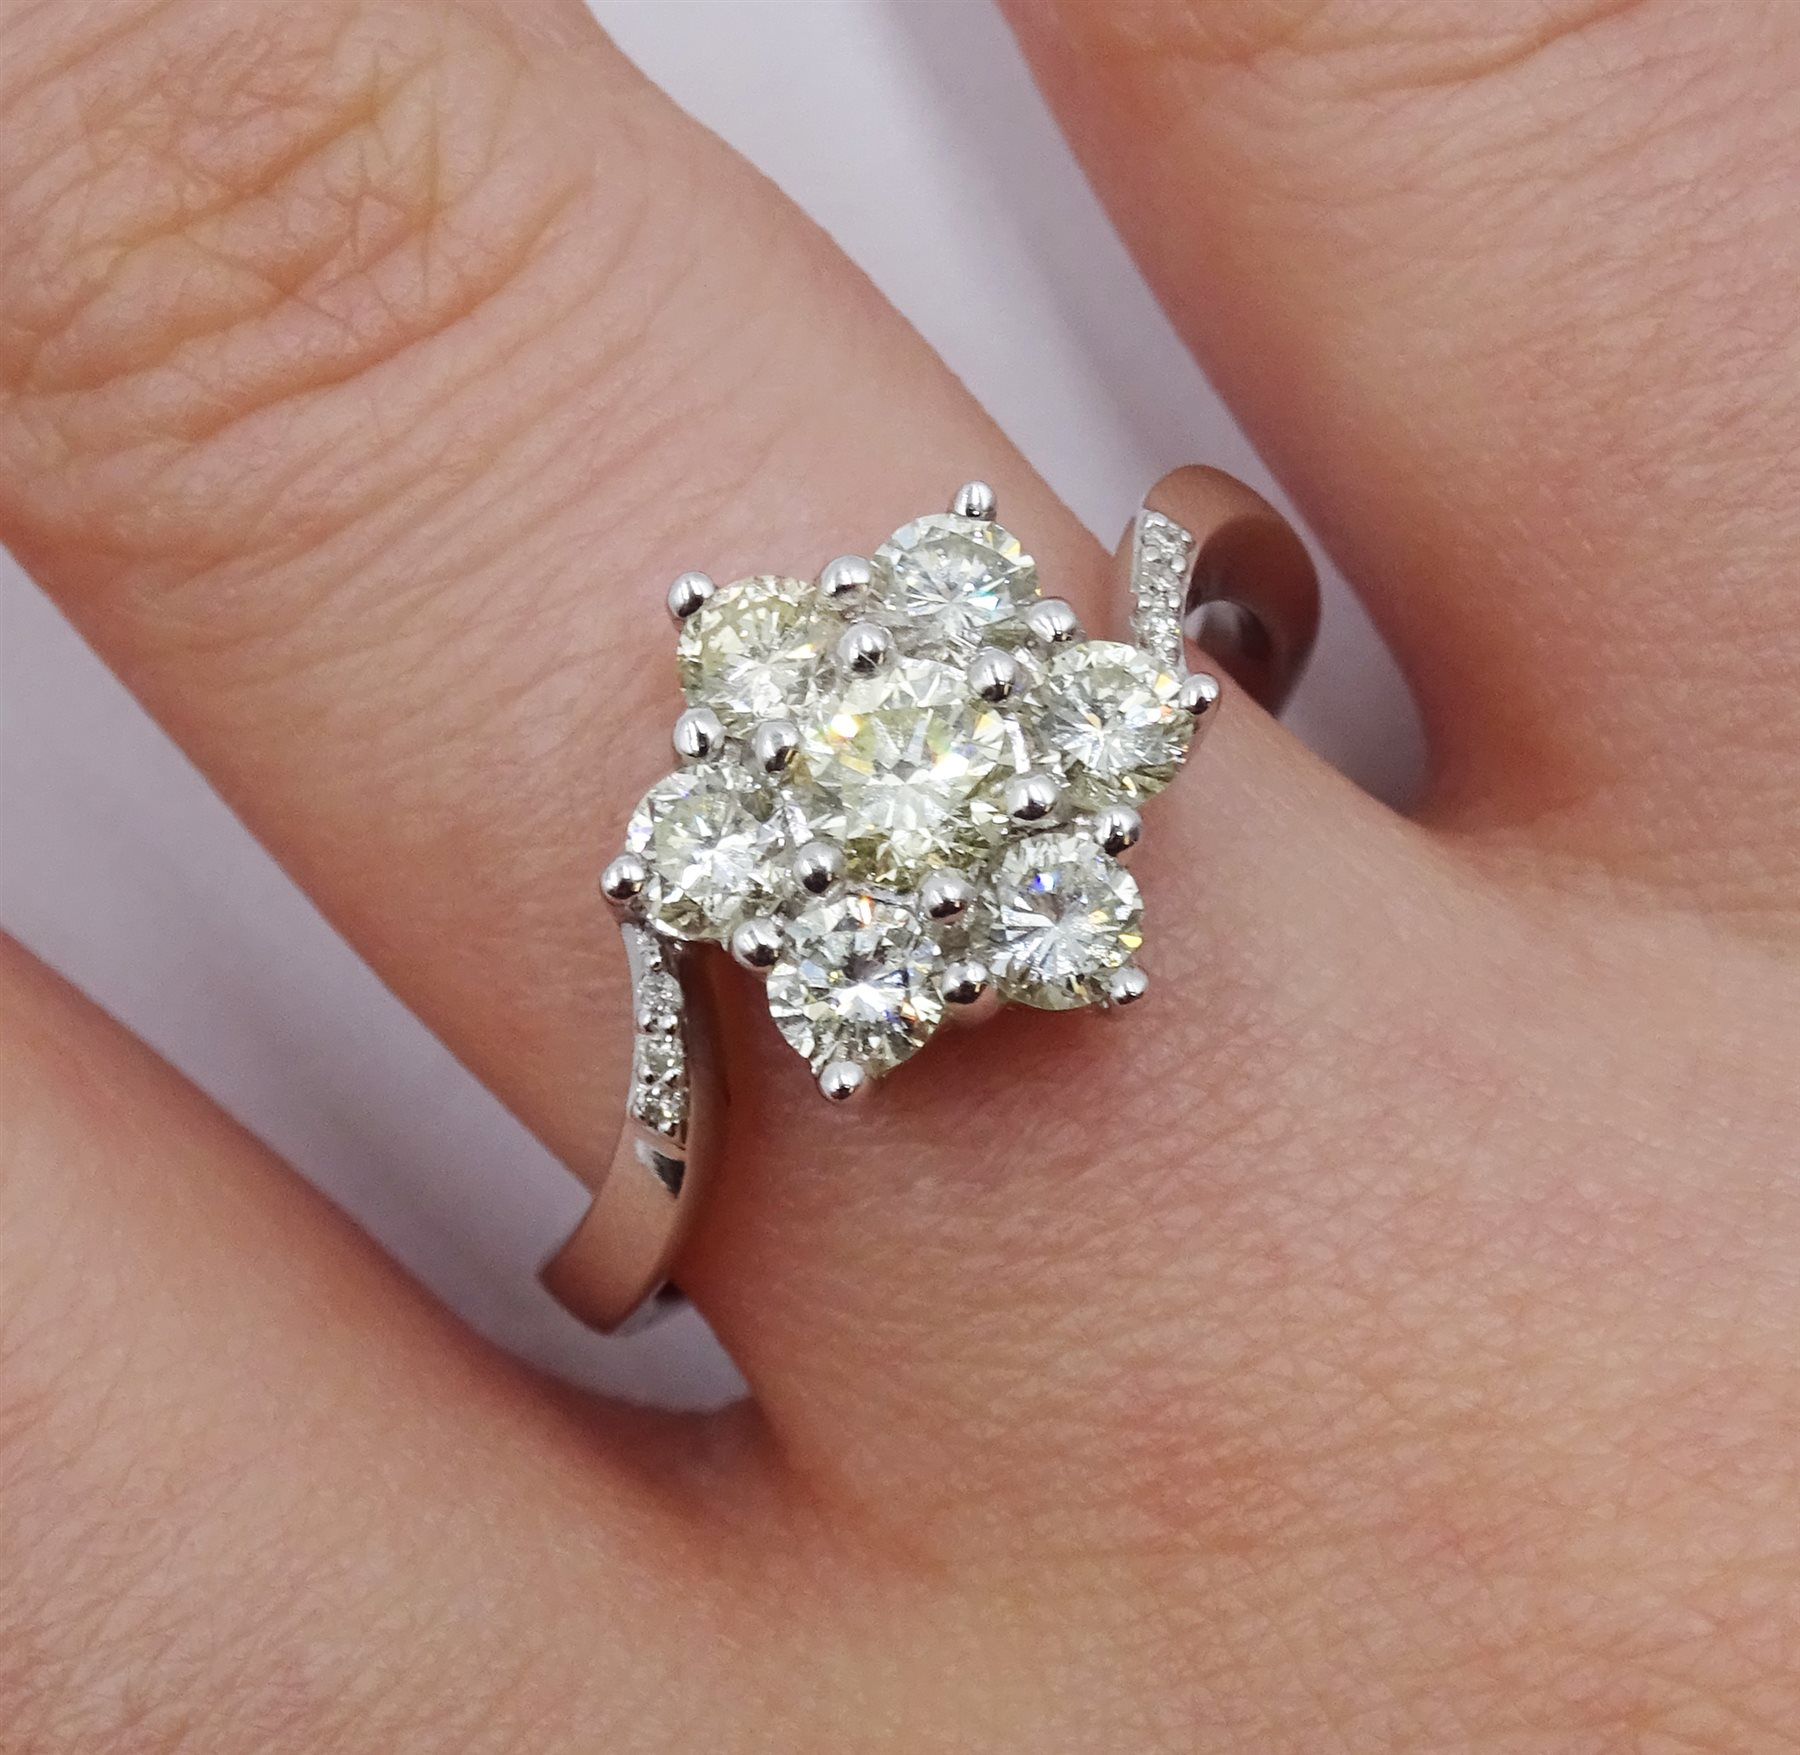 18ct white gold diamond cluster ring - Image 2 of 4